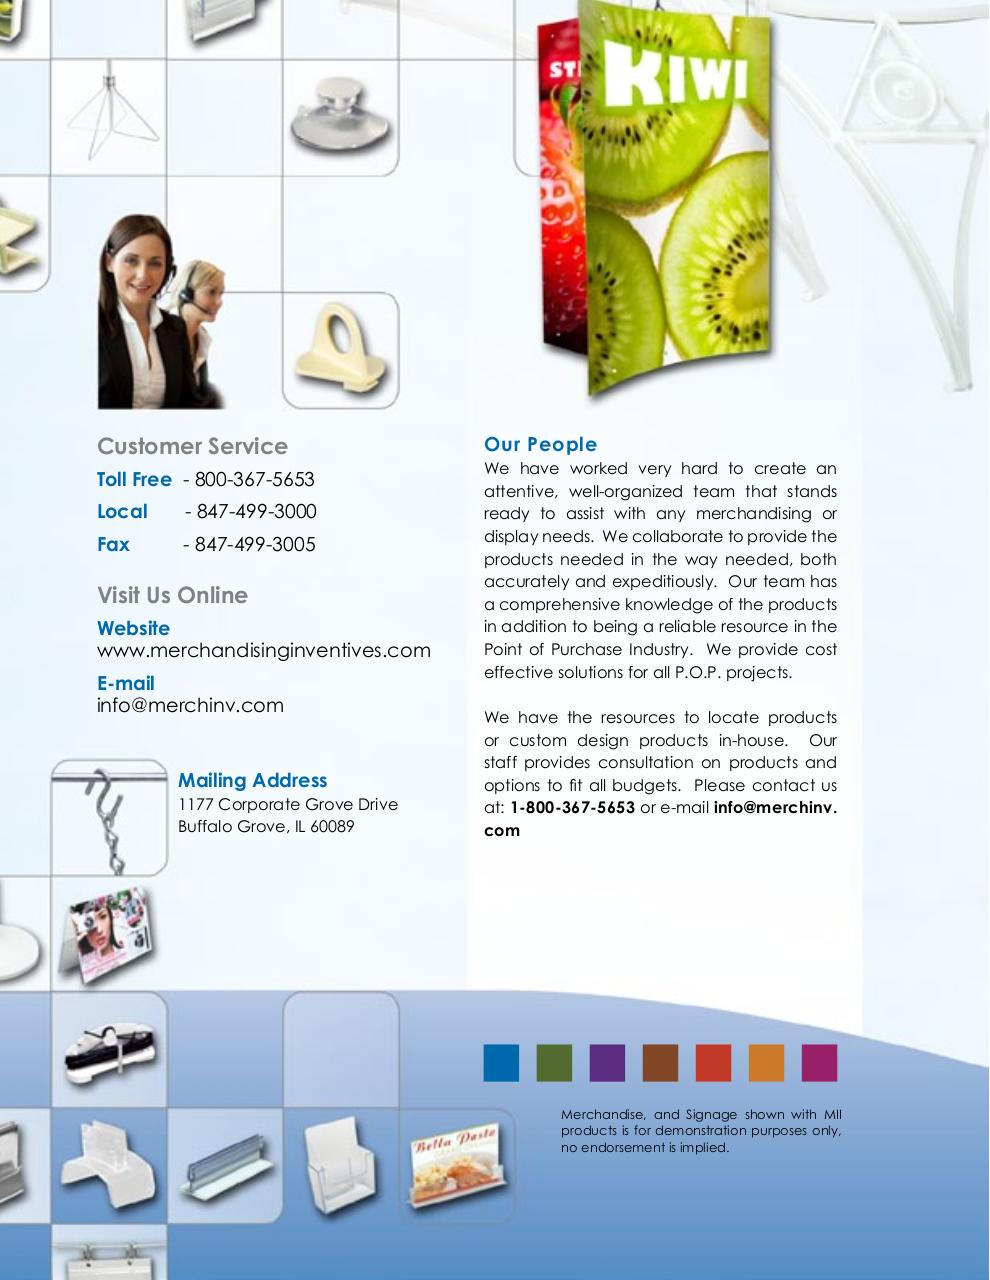 merchandising_inventives-2011_full_catalog.pdf - page 2/108